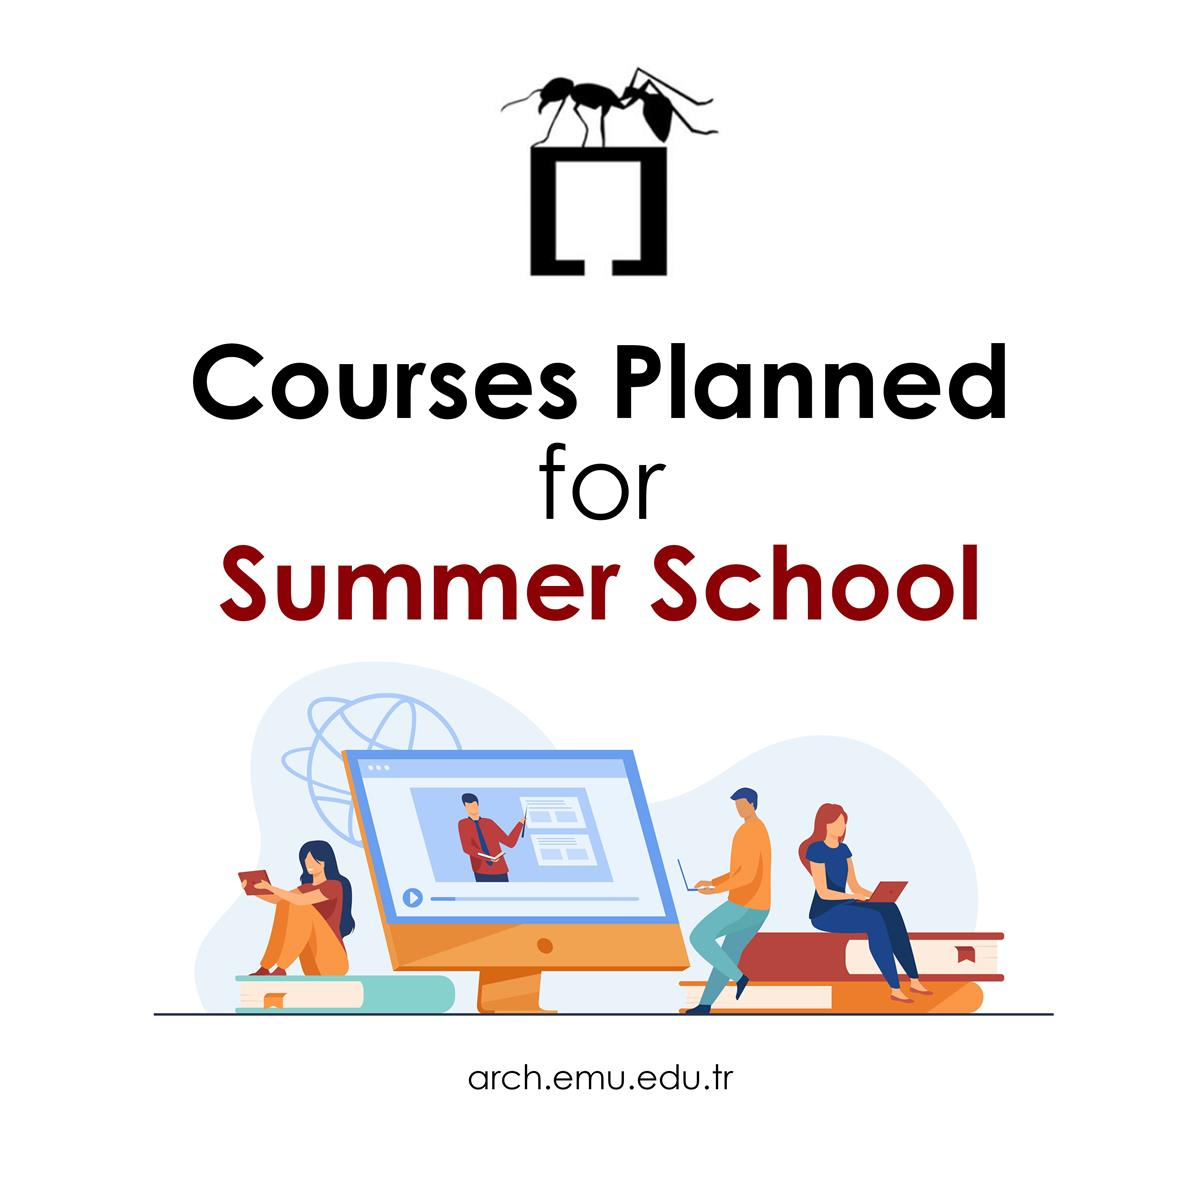 Courses Planned for Summer School